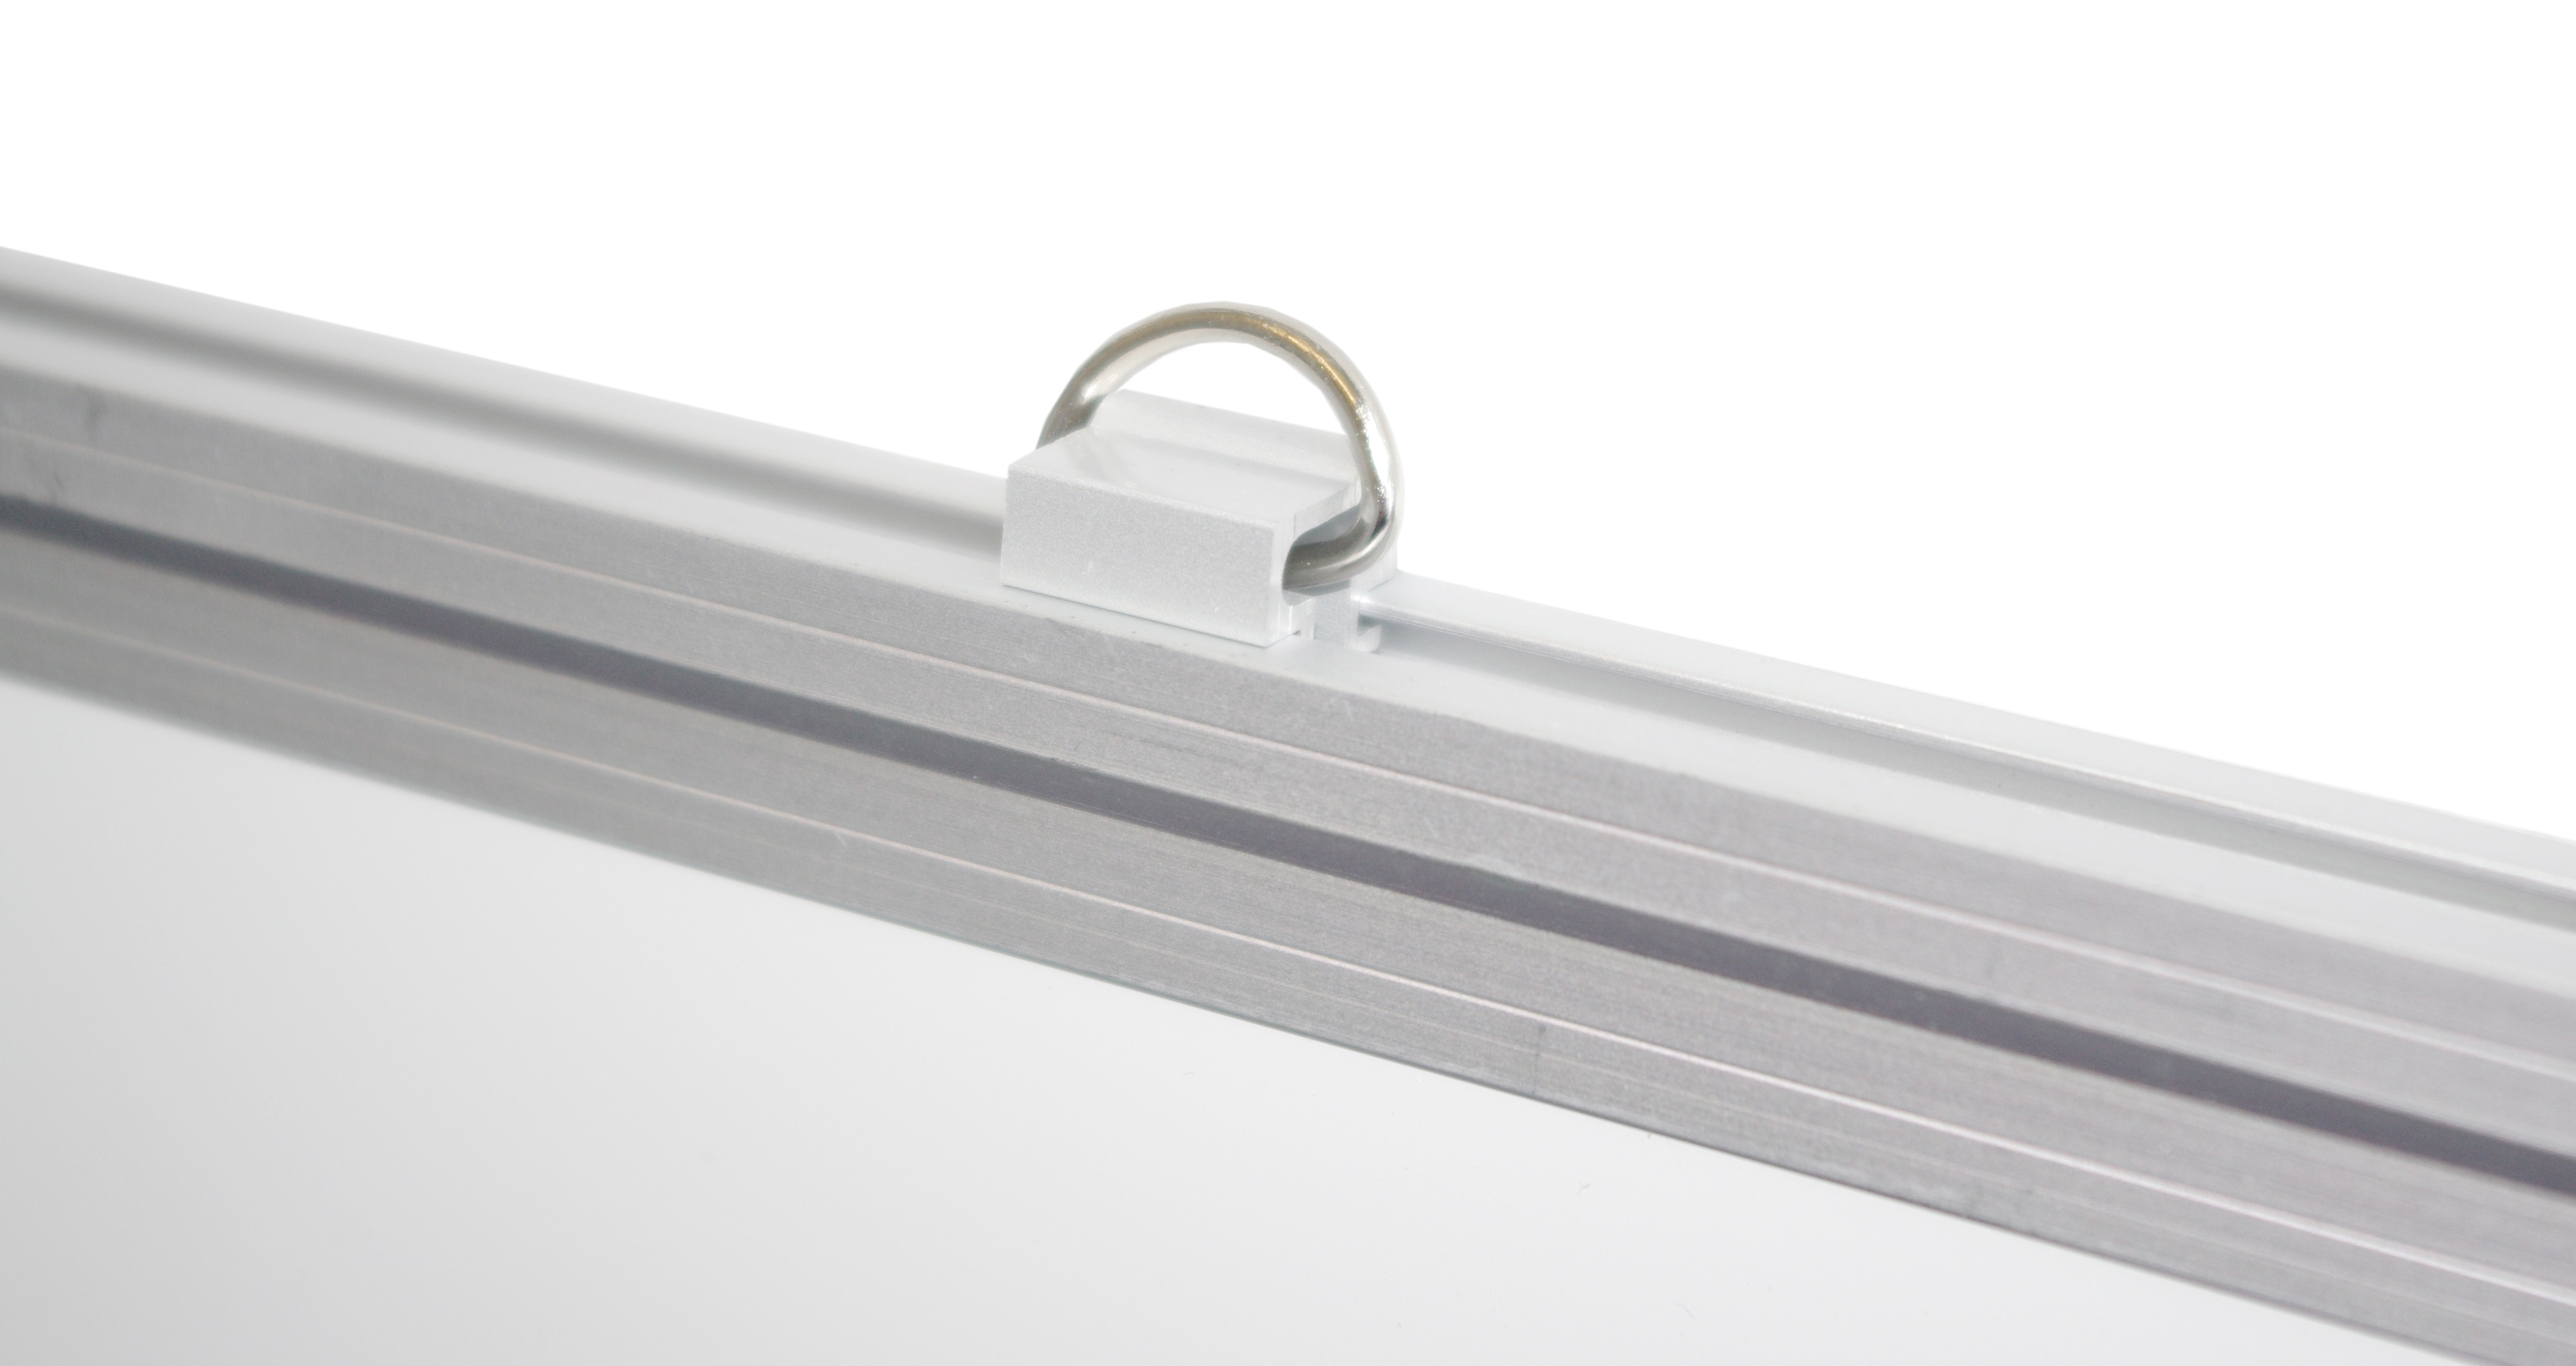 Product Nation A4 Paper Trimmer